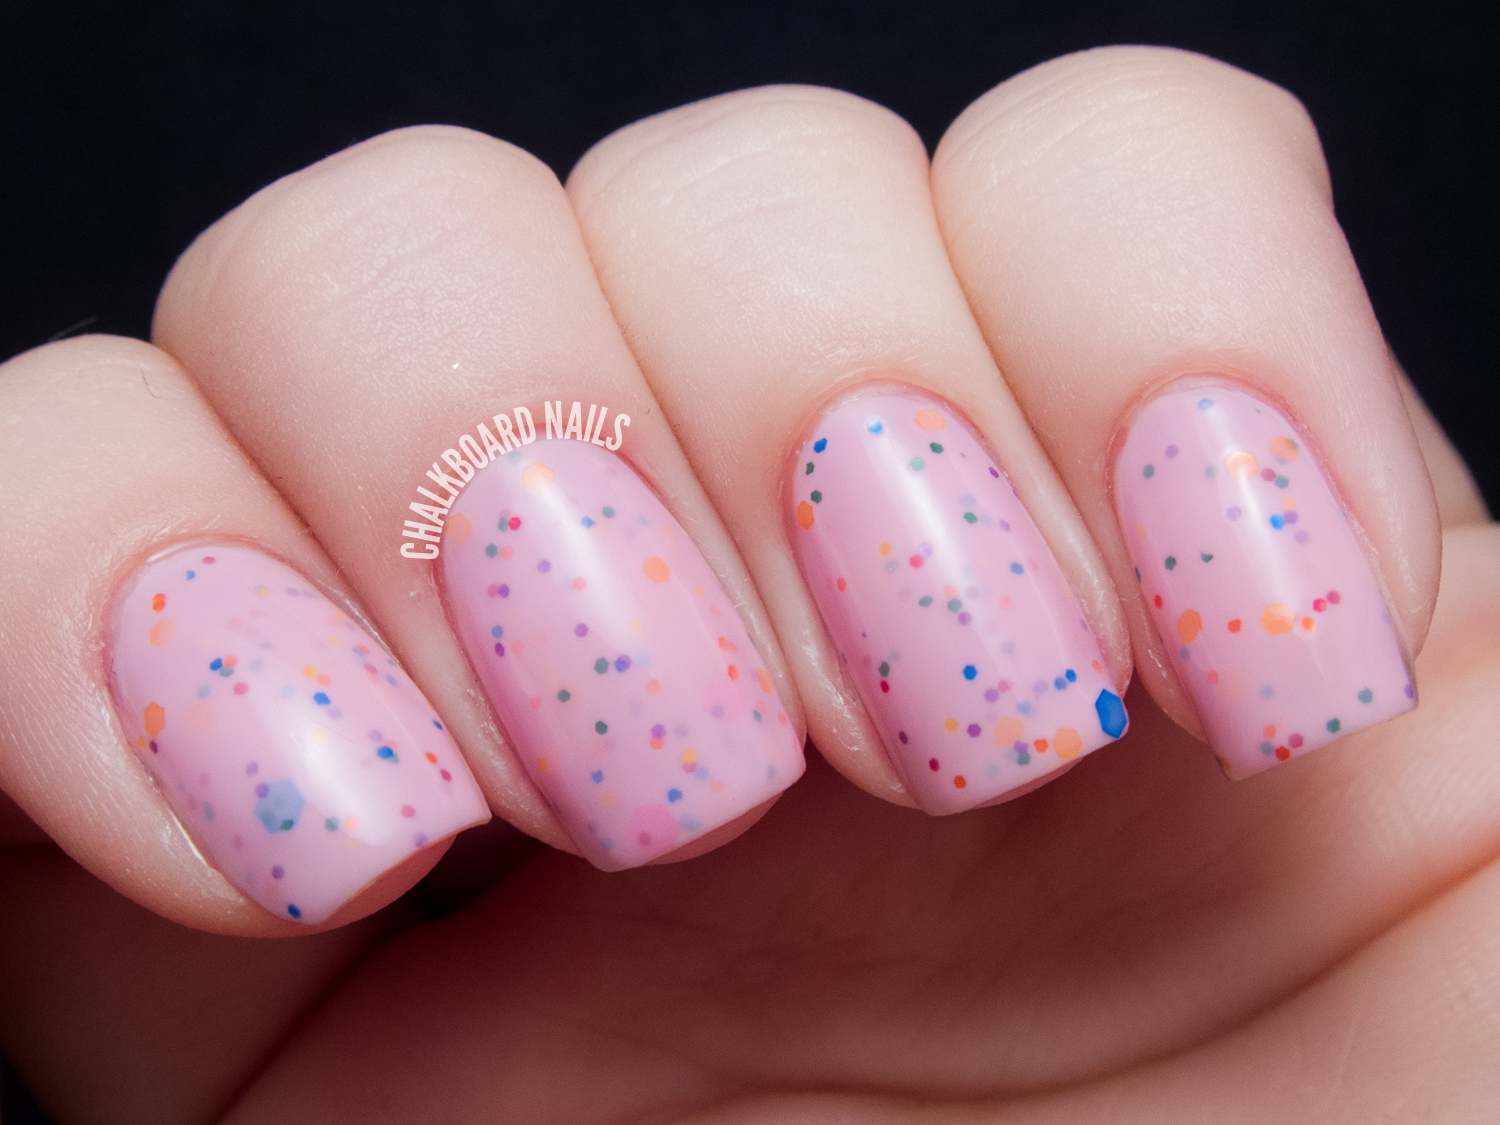 Chalkboard Nails: Starrily Strawberry Donut